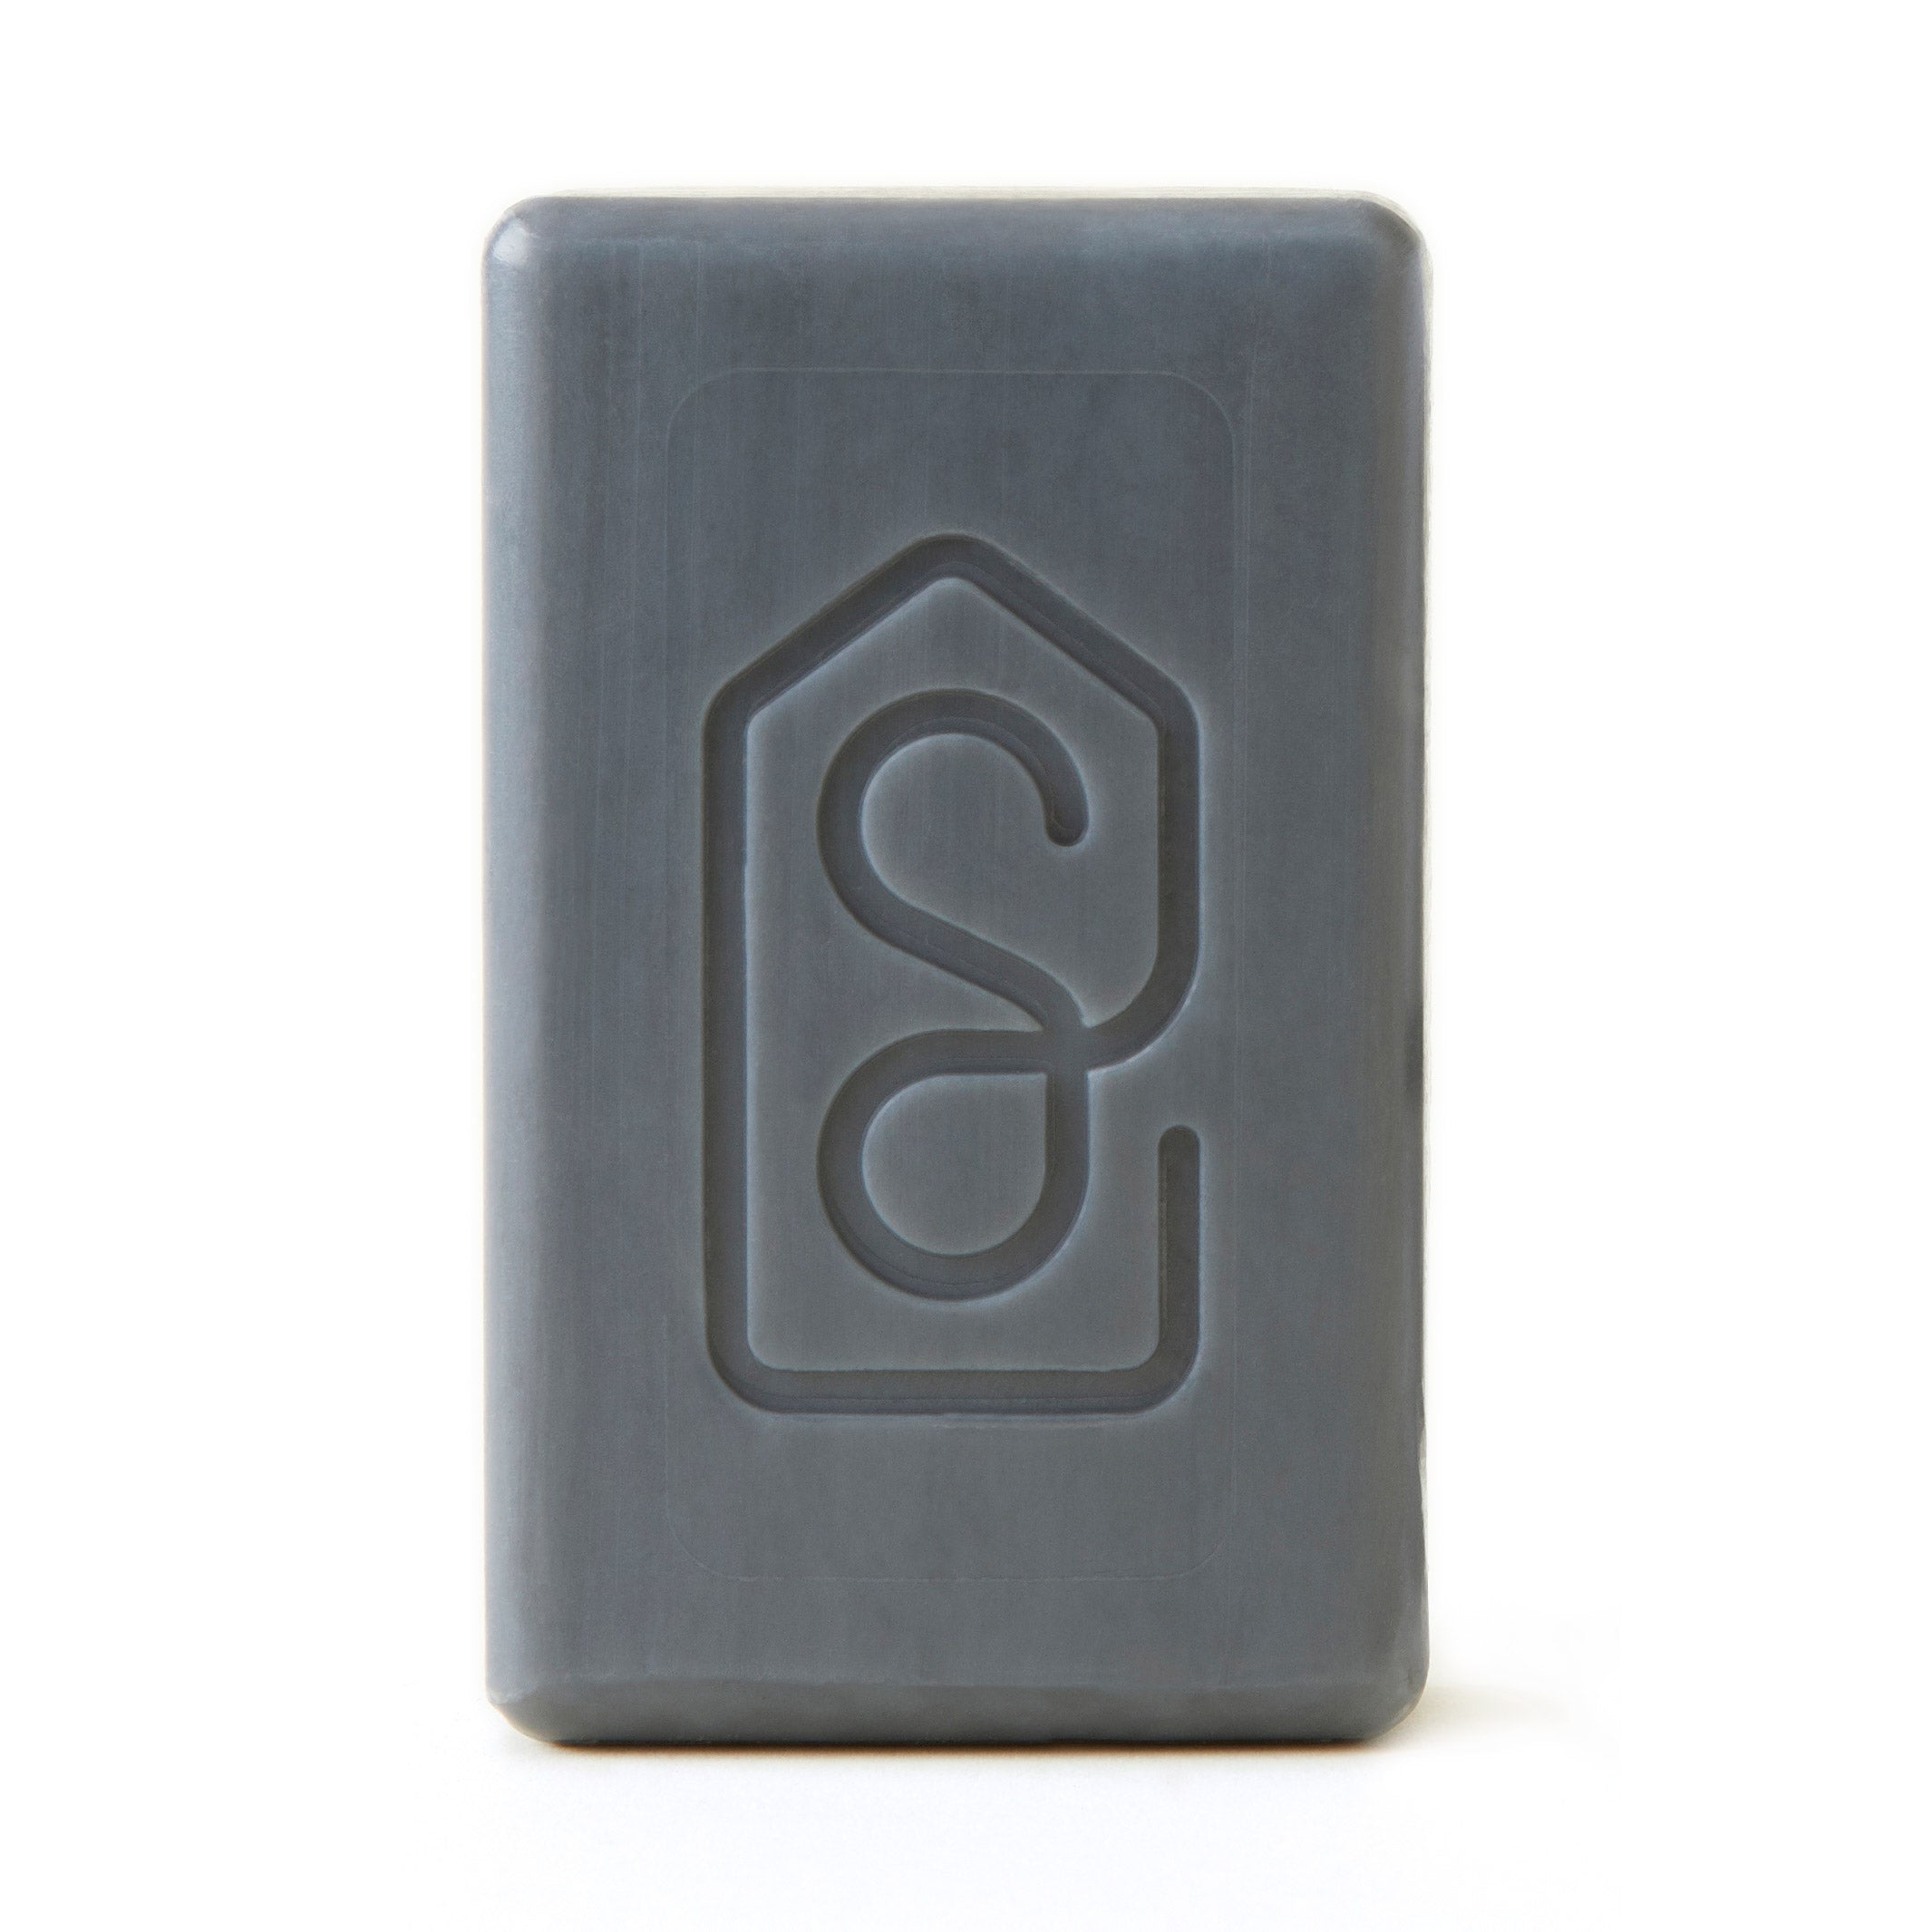 Soapiary Charcoal and Verbena Bar Soap: Rectangular bar soap shown unwrapped to show grey coloring with stamped logo on bar.